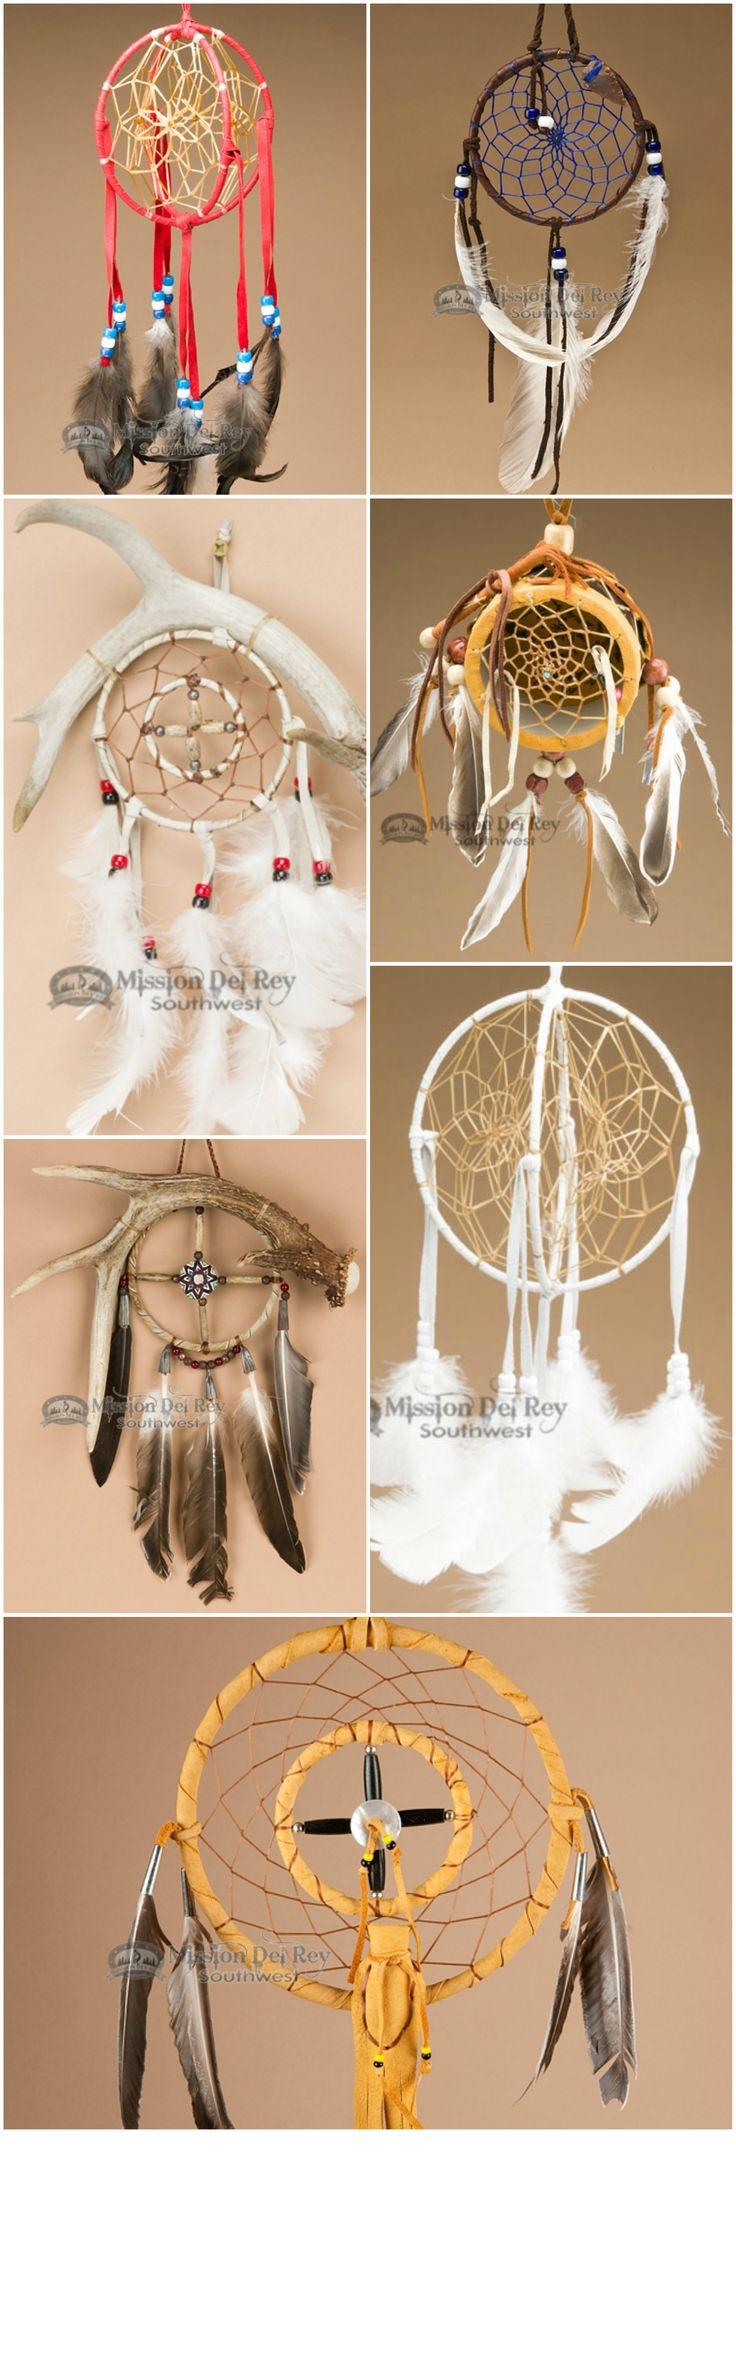 See our quality, handcrafted Native American dreamcatchers in a wide variety of styles and colors.  Our dream catchers are authentic Native American, and are hand made with exquisite detail.  Find the perfect dream catcher to add to your Native American collection or southwest decor at http://www.missiondelrey.com/native-american-dream-catchers/